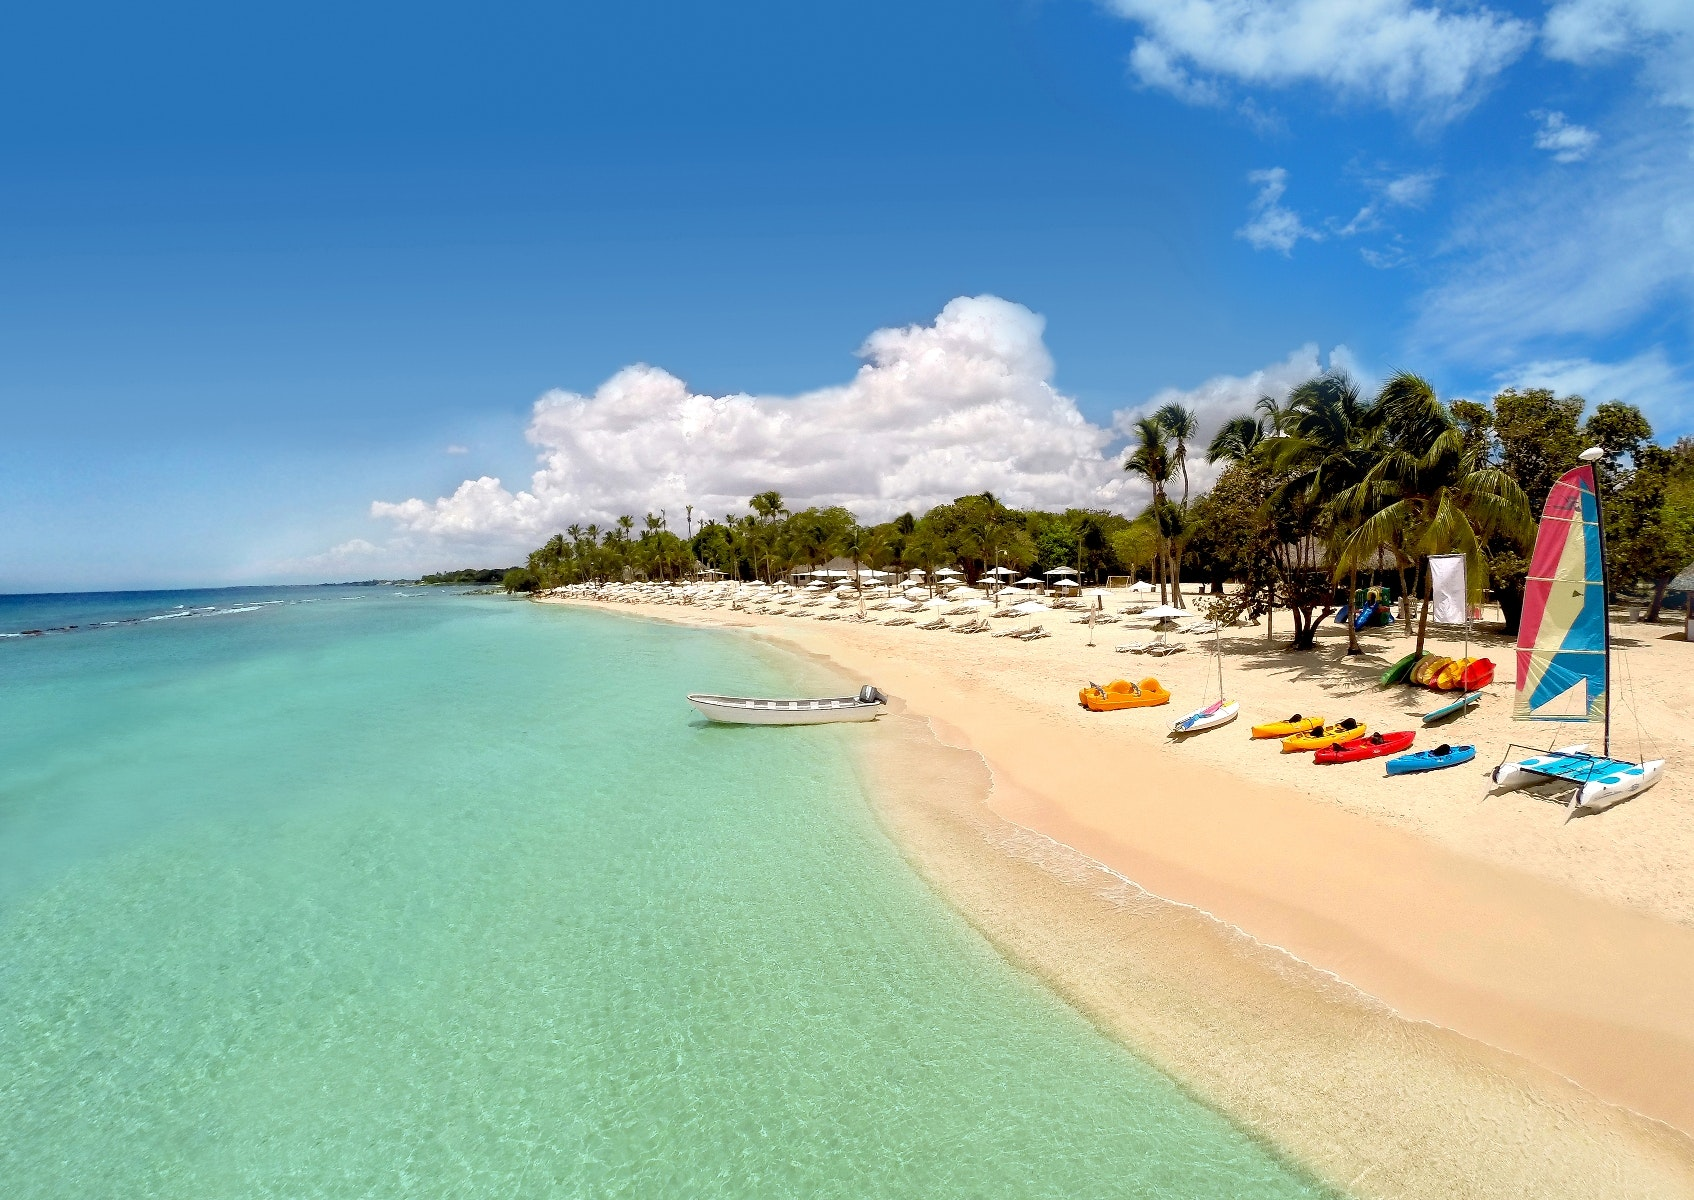 This idyllic beach is calling at Casa de Campo in the Dominican Republic.